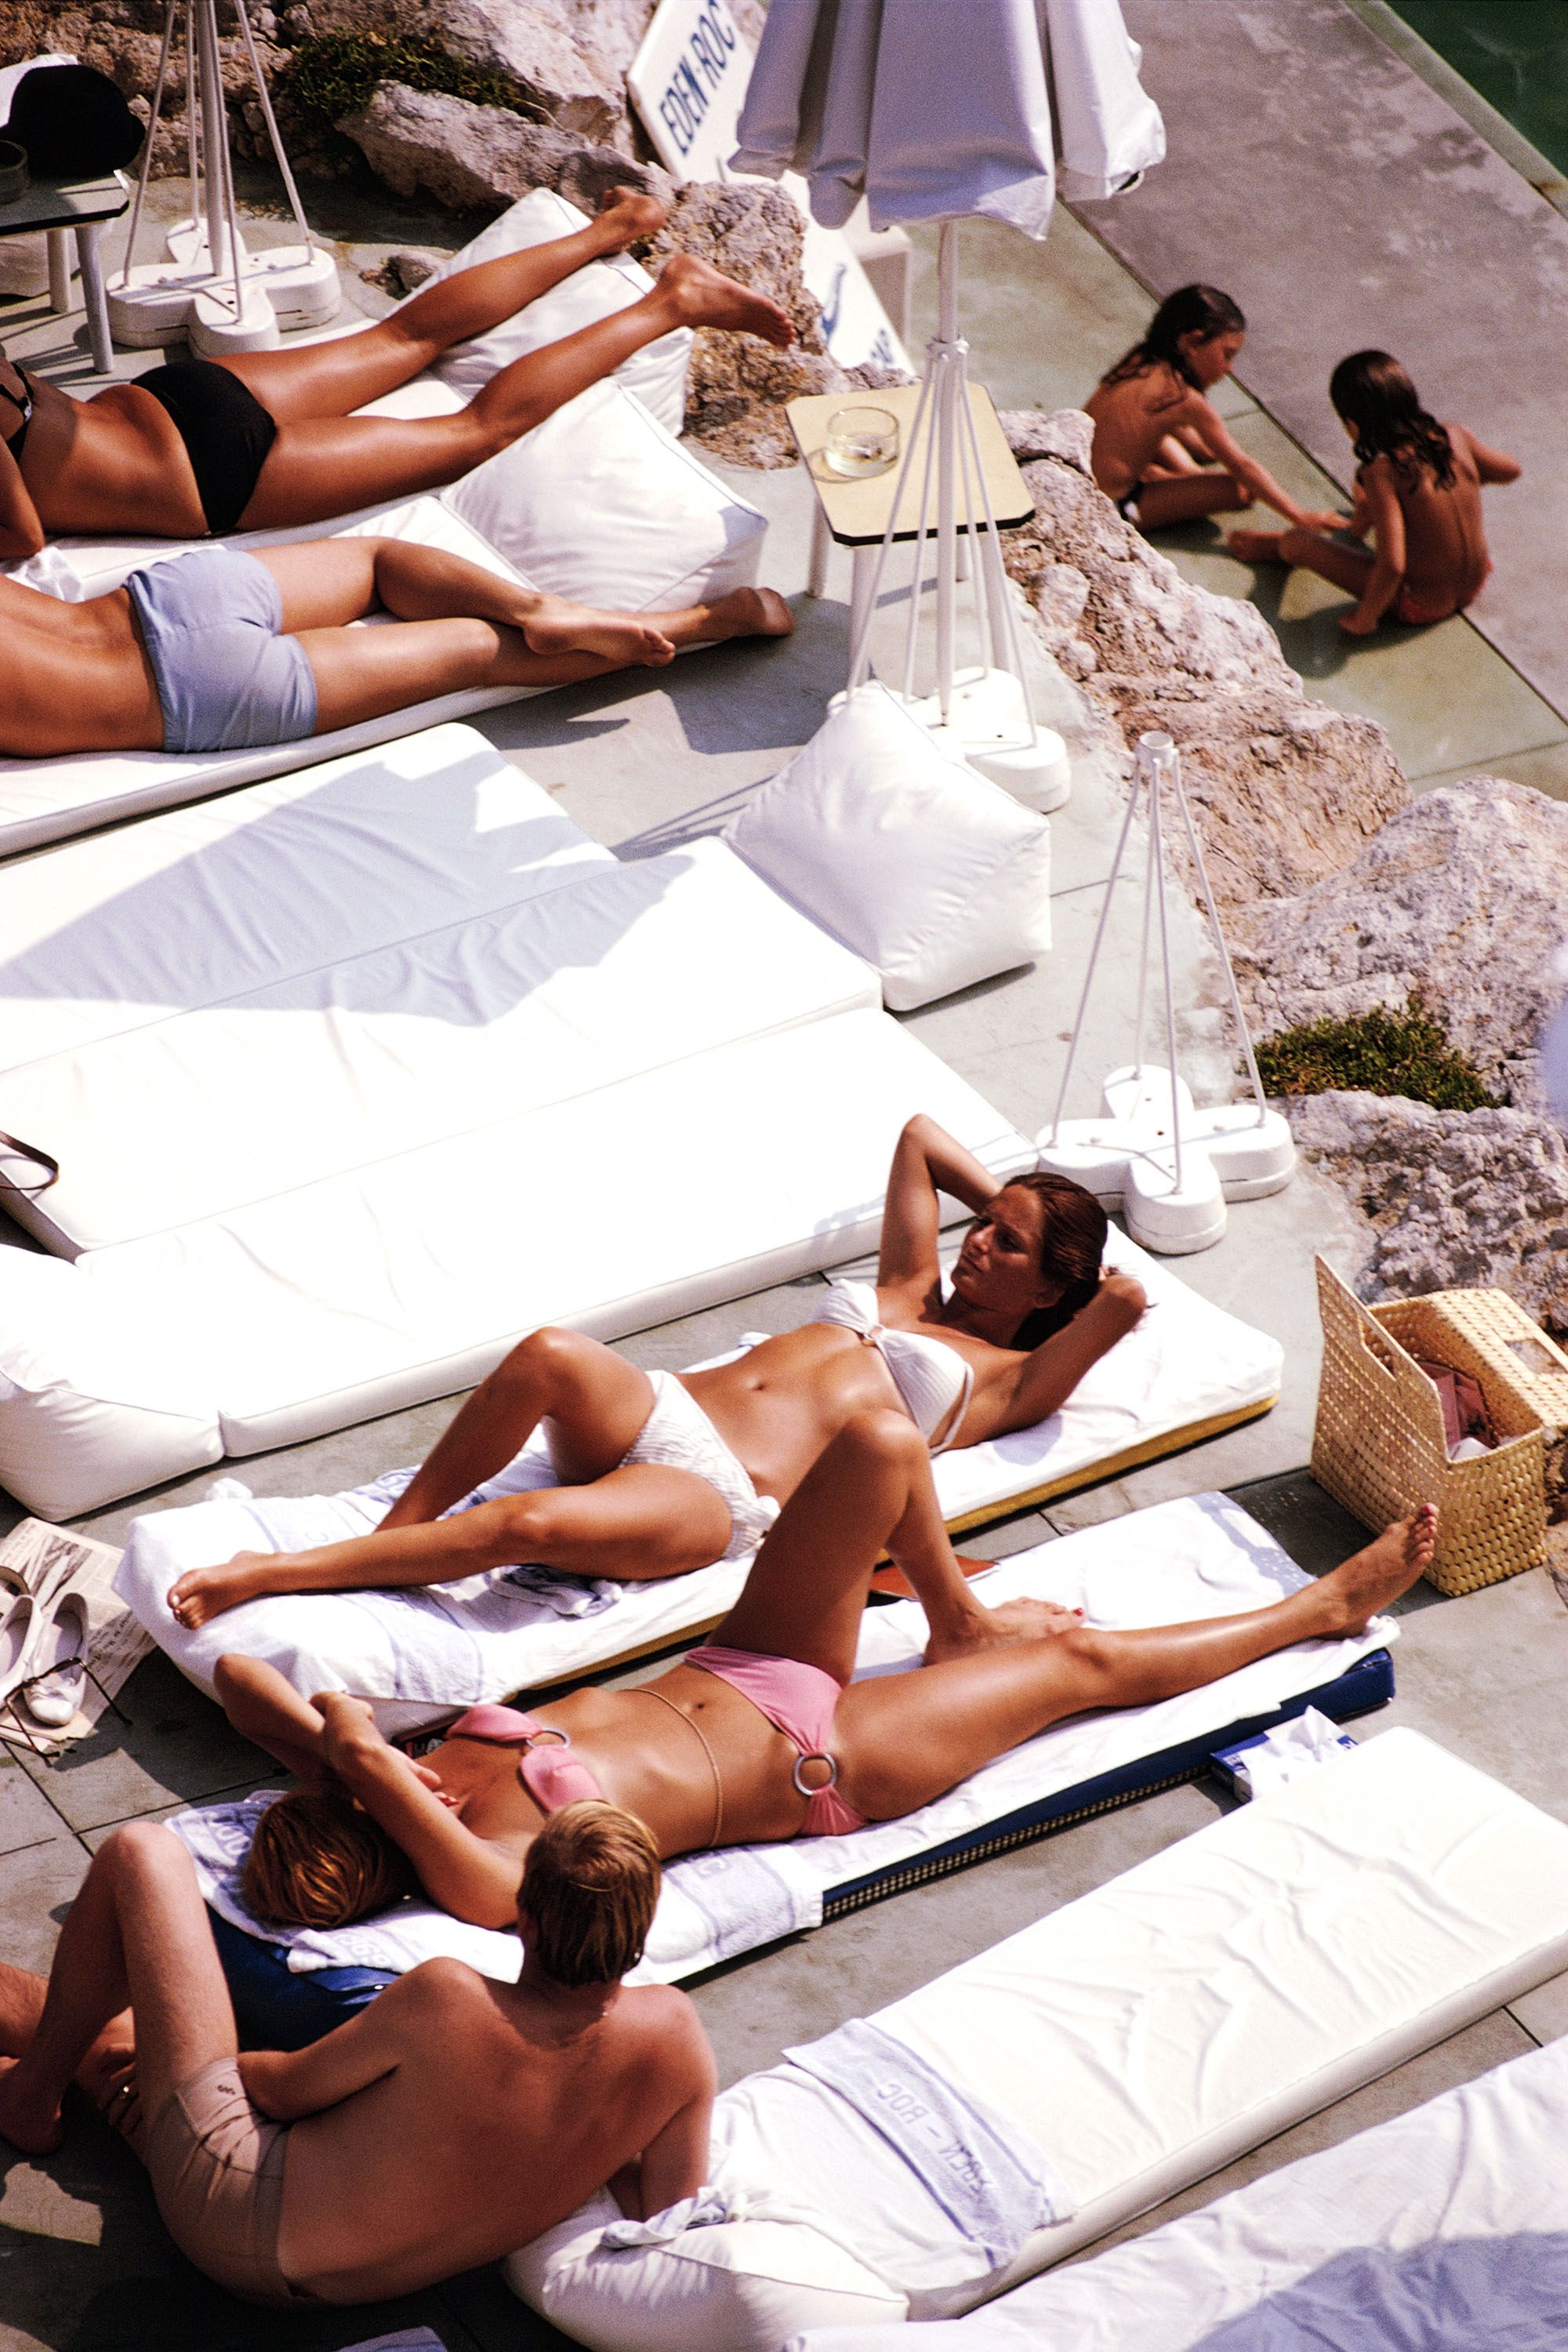 Sunbathers at the Hotel du Cap Eden-Roc, Antibes, France, August 1969. (Photo by Slim Aarons/Hulton Archive/Getty Images)